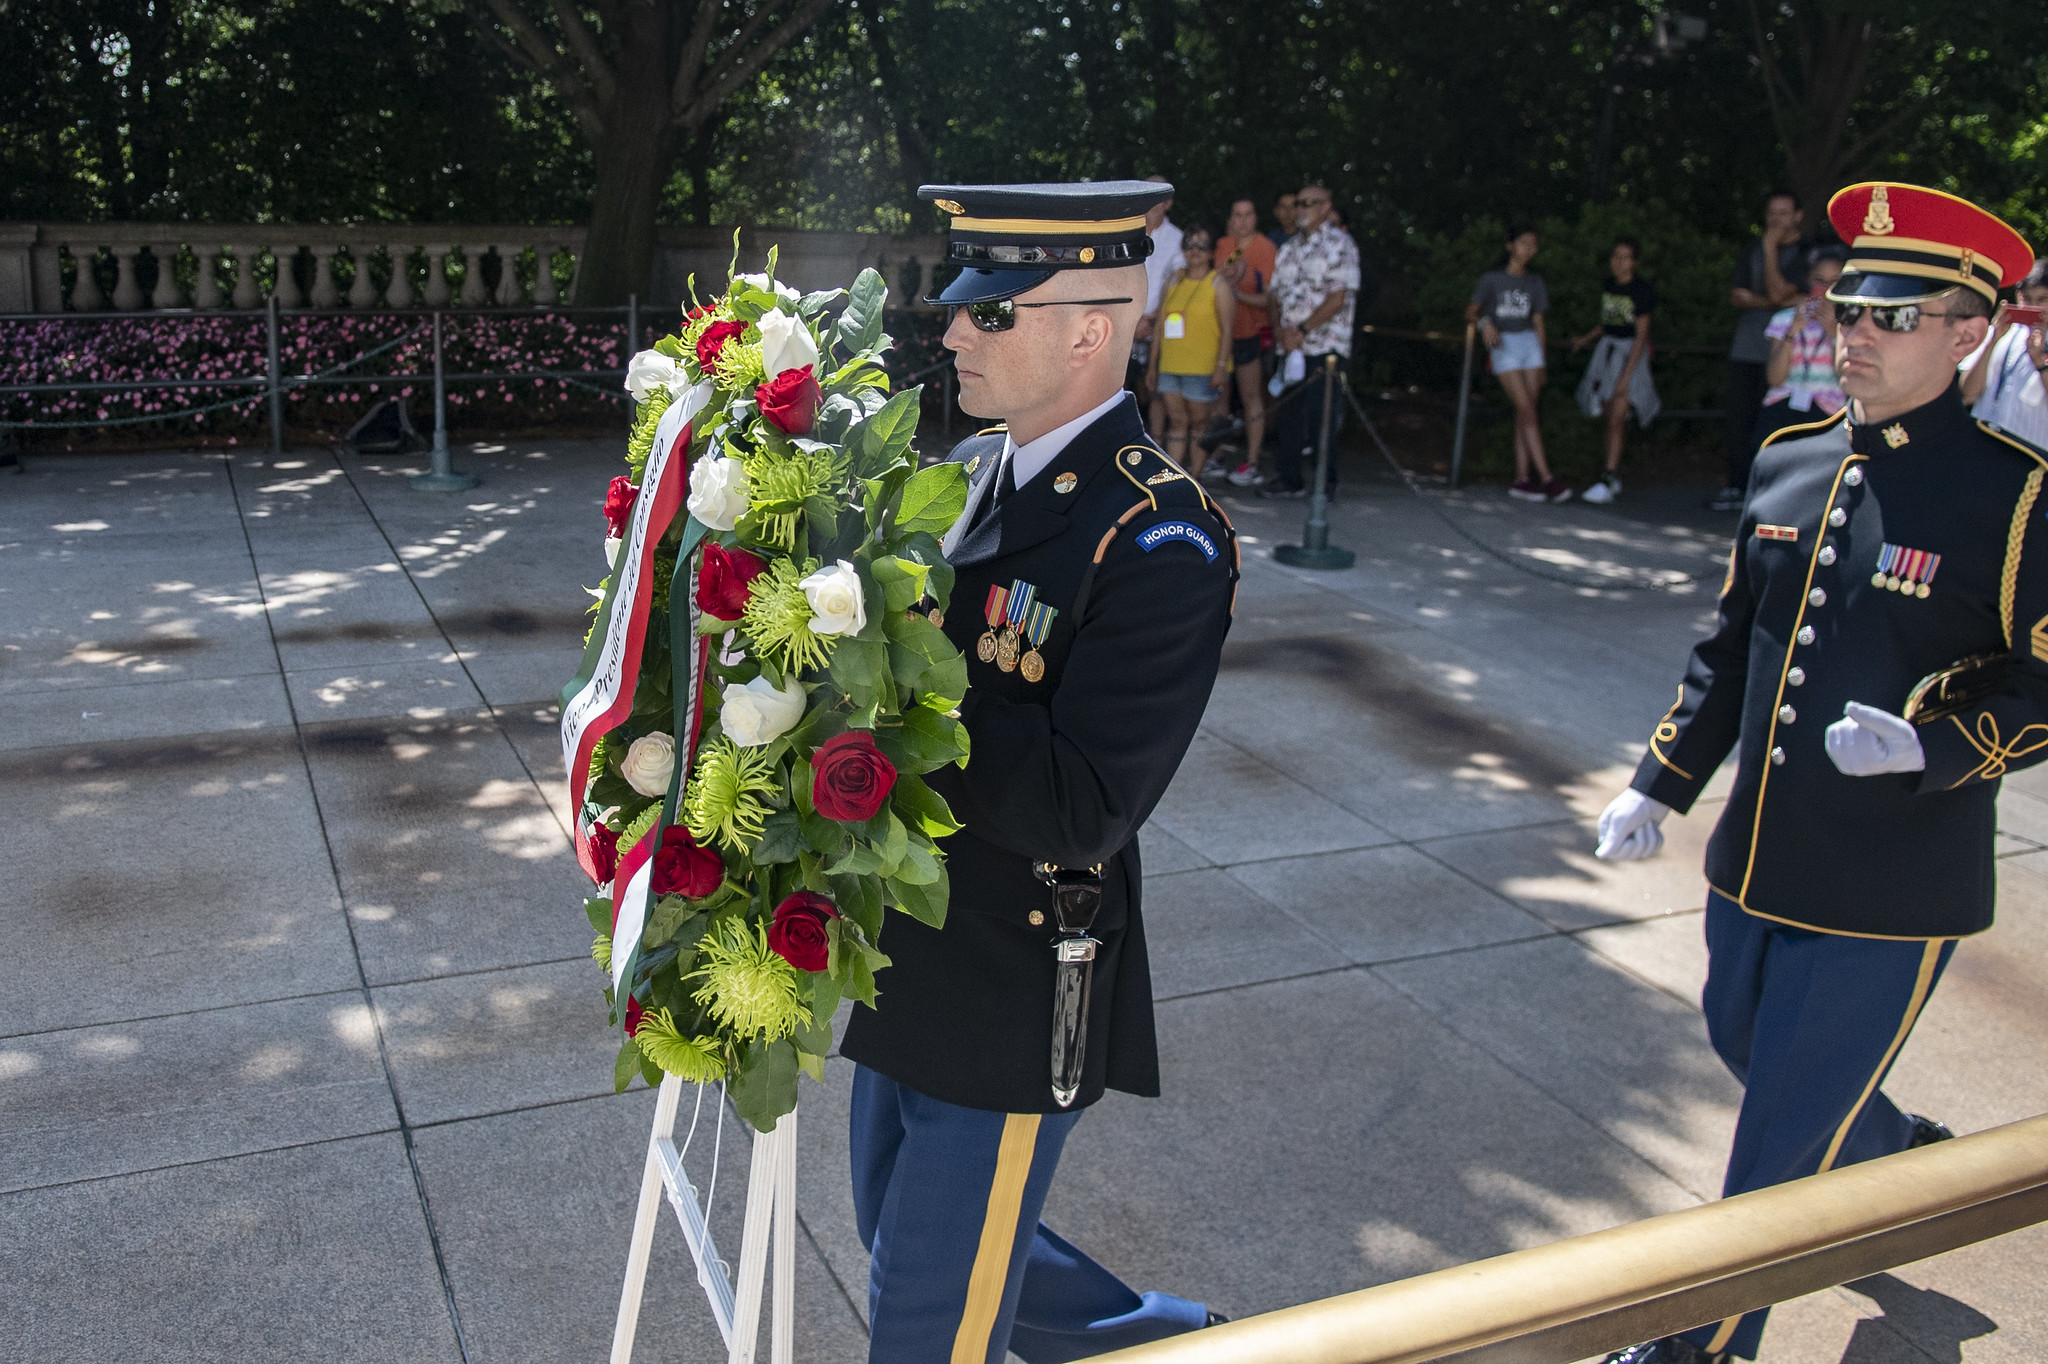 A uniformed soldier plans to lay a wreath at the Tomb of the Unknown Soldier